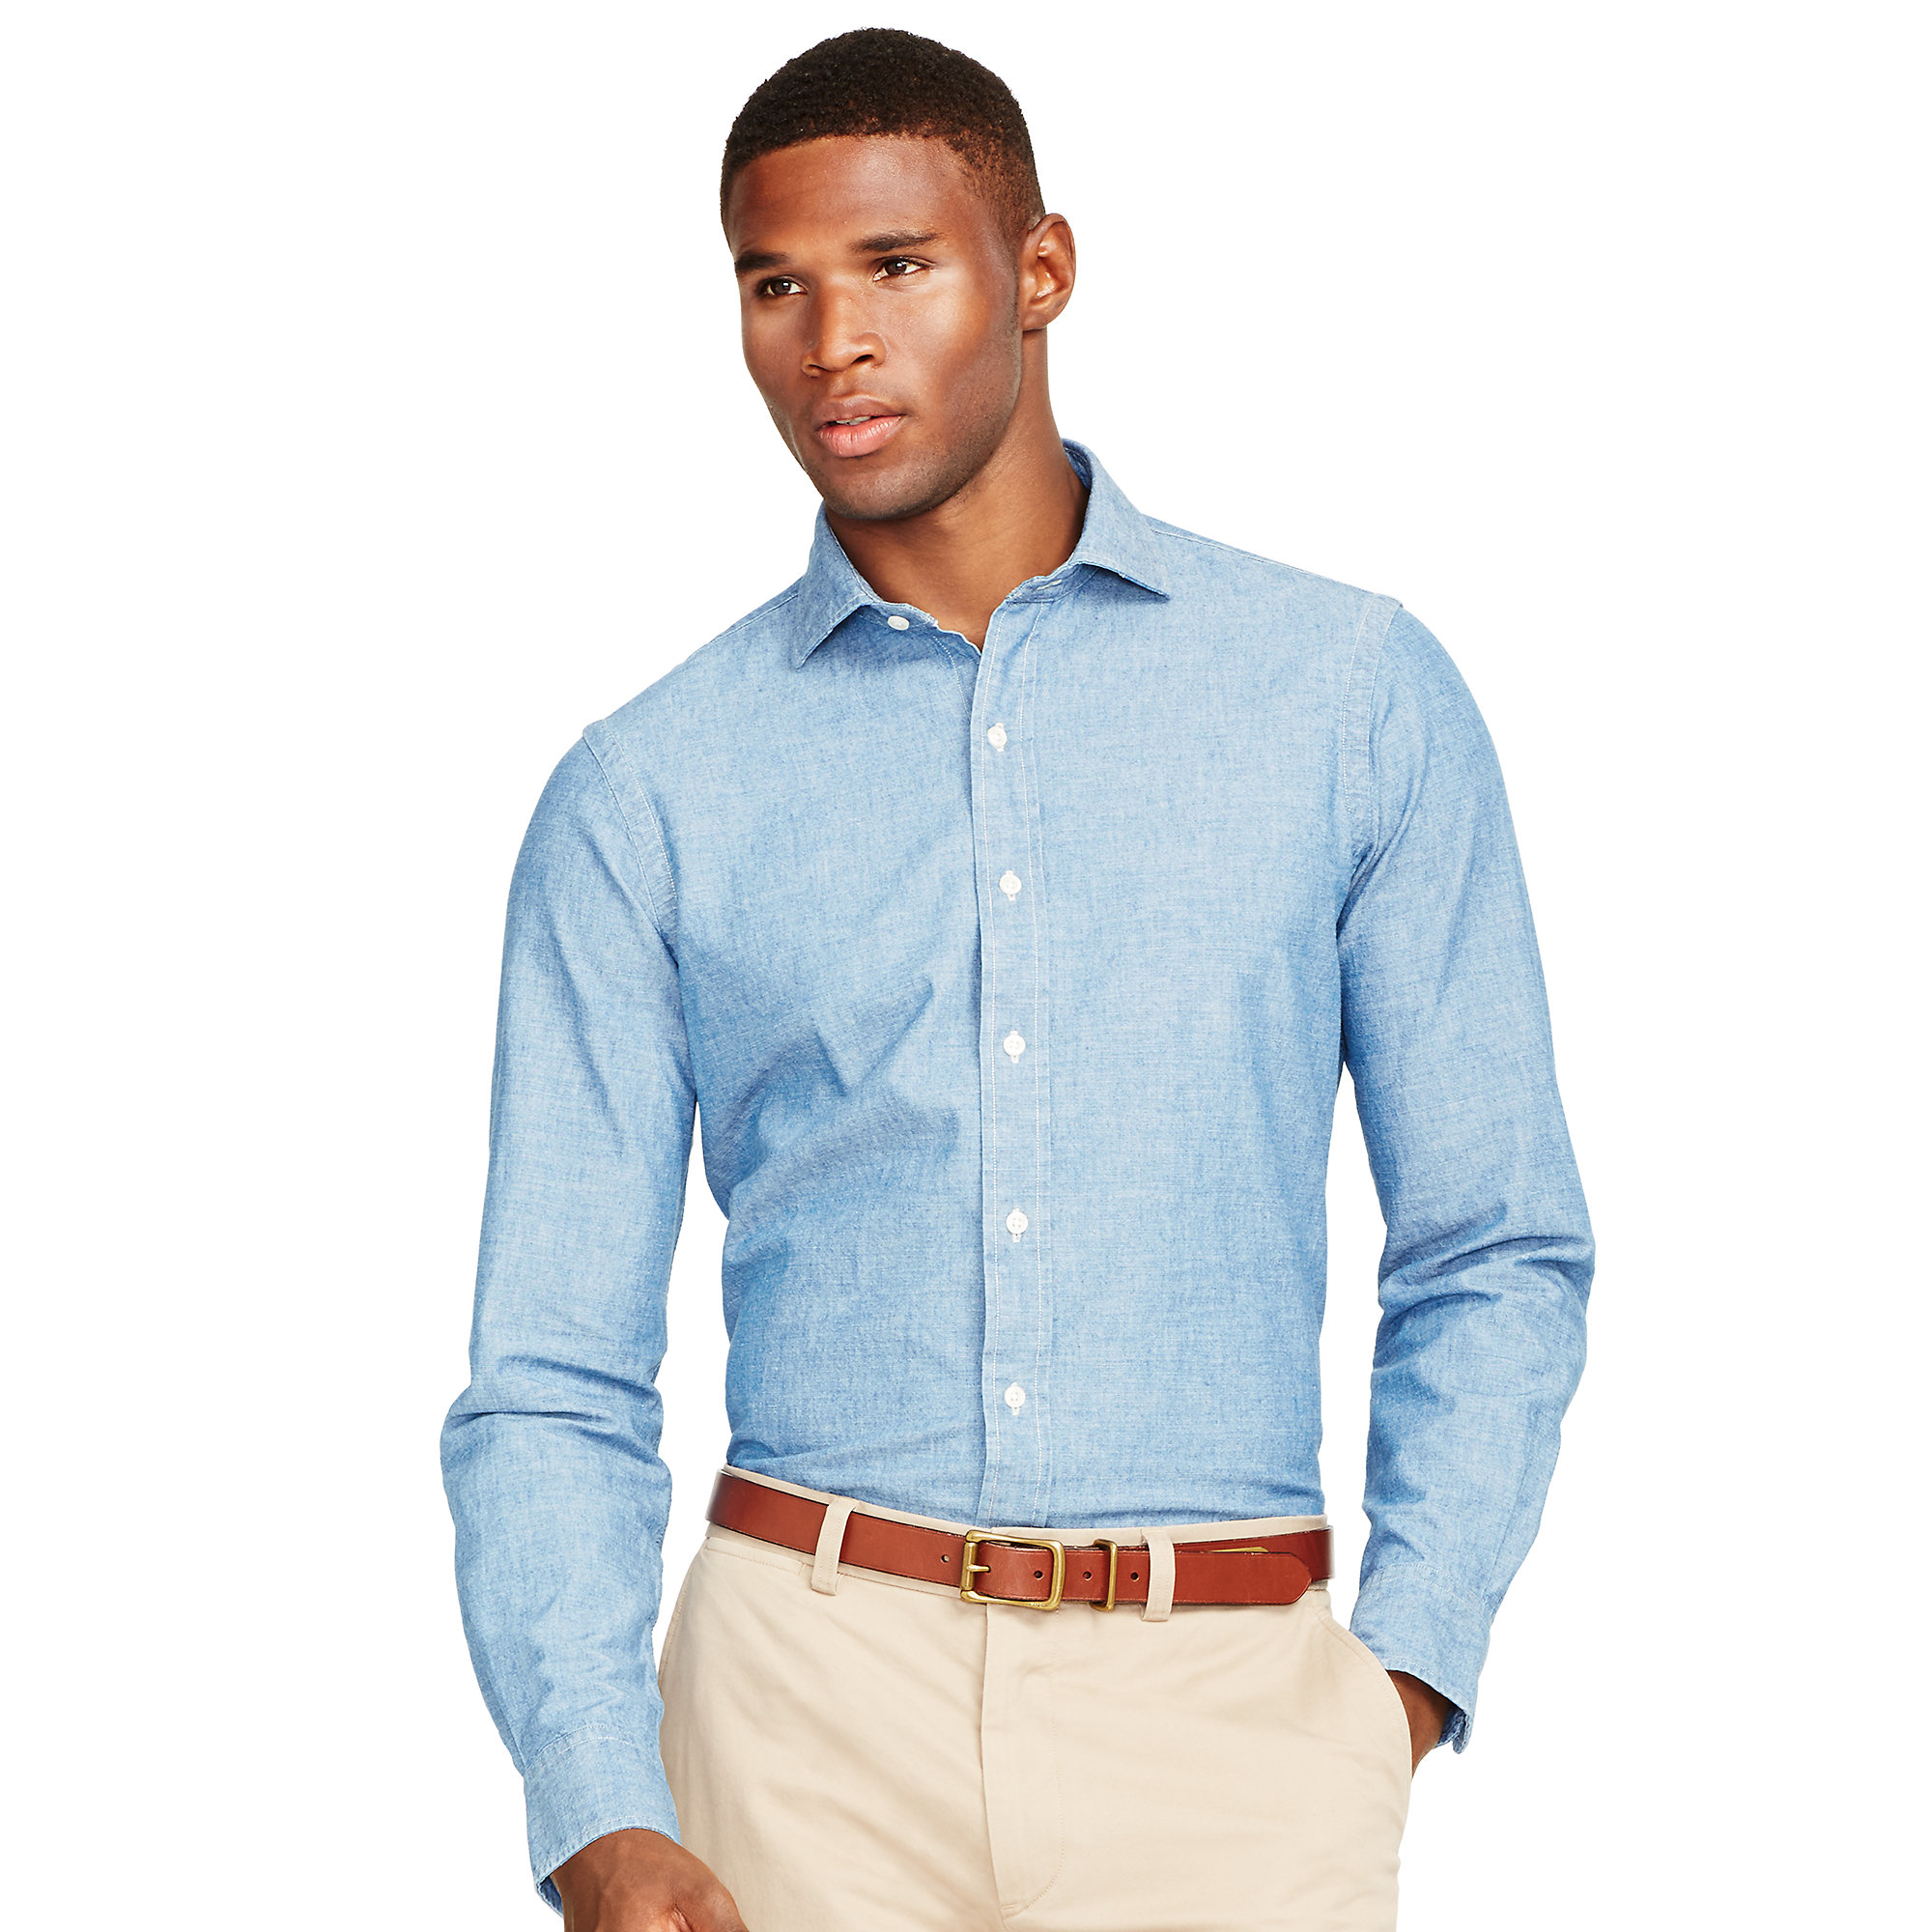 polo ralph lauren estate cotton chambray shirt in blue for men indigo chambray lyst. Black Bedroom Furniture Sets. Home Design Ideas